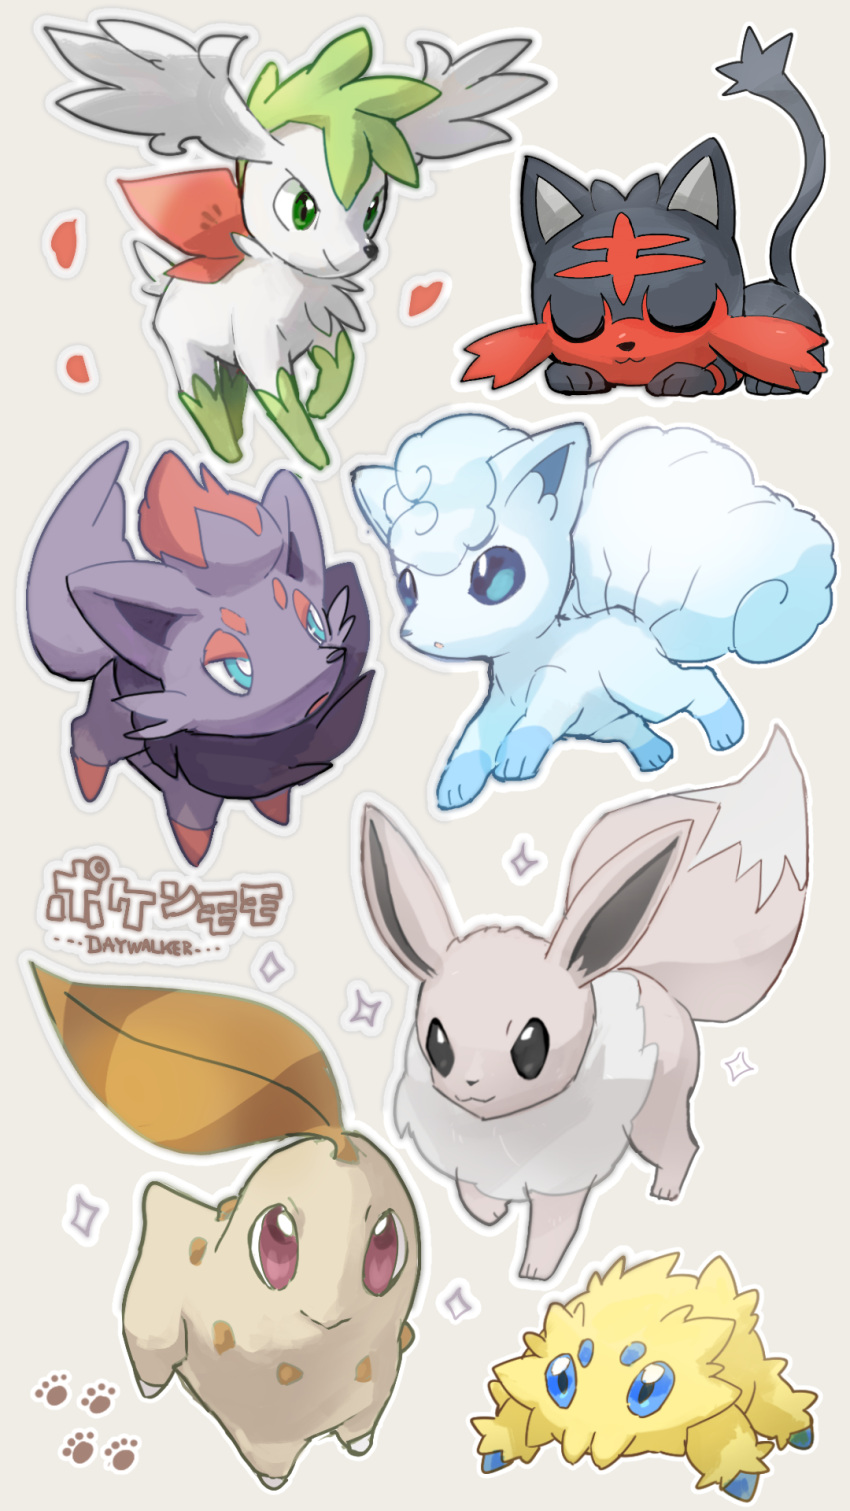 :> :3 alolan_form alolan_vulpix alternate_color animal_focus bangs beige_background black_eyes blank_eyes blue_eyes blue_hair character_cutout chikorita closed_eyes closed_mouth day_walker1117 eevee extra_eyes full_body gen_1_pokemon gen_2_pokemon gen_4_pokemon gen_5_pokemon gen_7_pokemon green_eyes green_hair half-closed_eyes happy head_wings heart highres joltik jumping leaf legendary_pokemon litten looking_at_viewer lying mythical_pokemon no_humans on_stomach open_mouth outline paw_print pokemon pokemon_(creature) red_eyes redhead shaymin shaymin_(sky) shiny_pokemon short_hair simple_background sleeping smile sparkle standing translation_request white_outline zorua